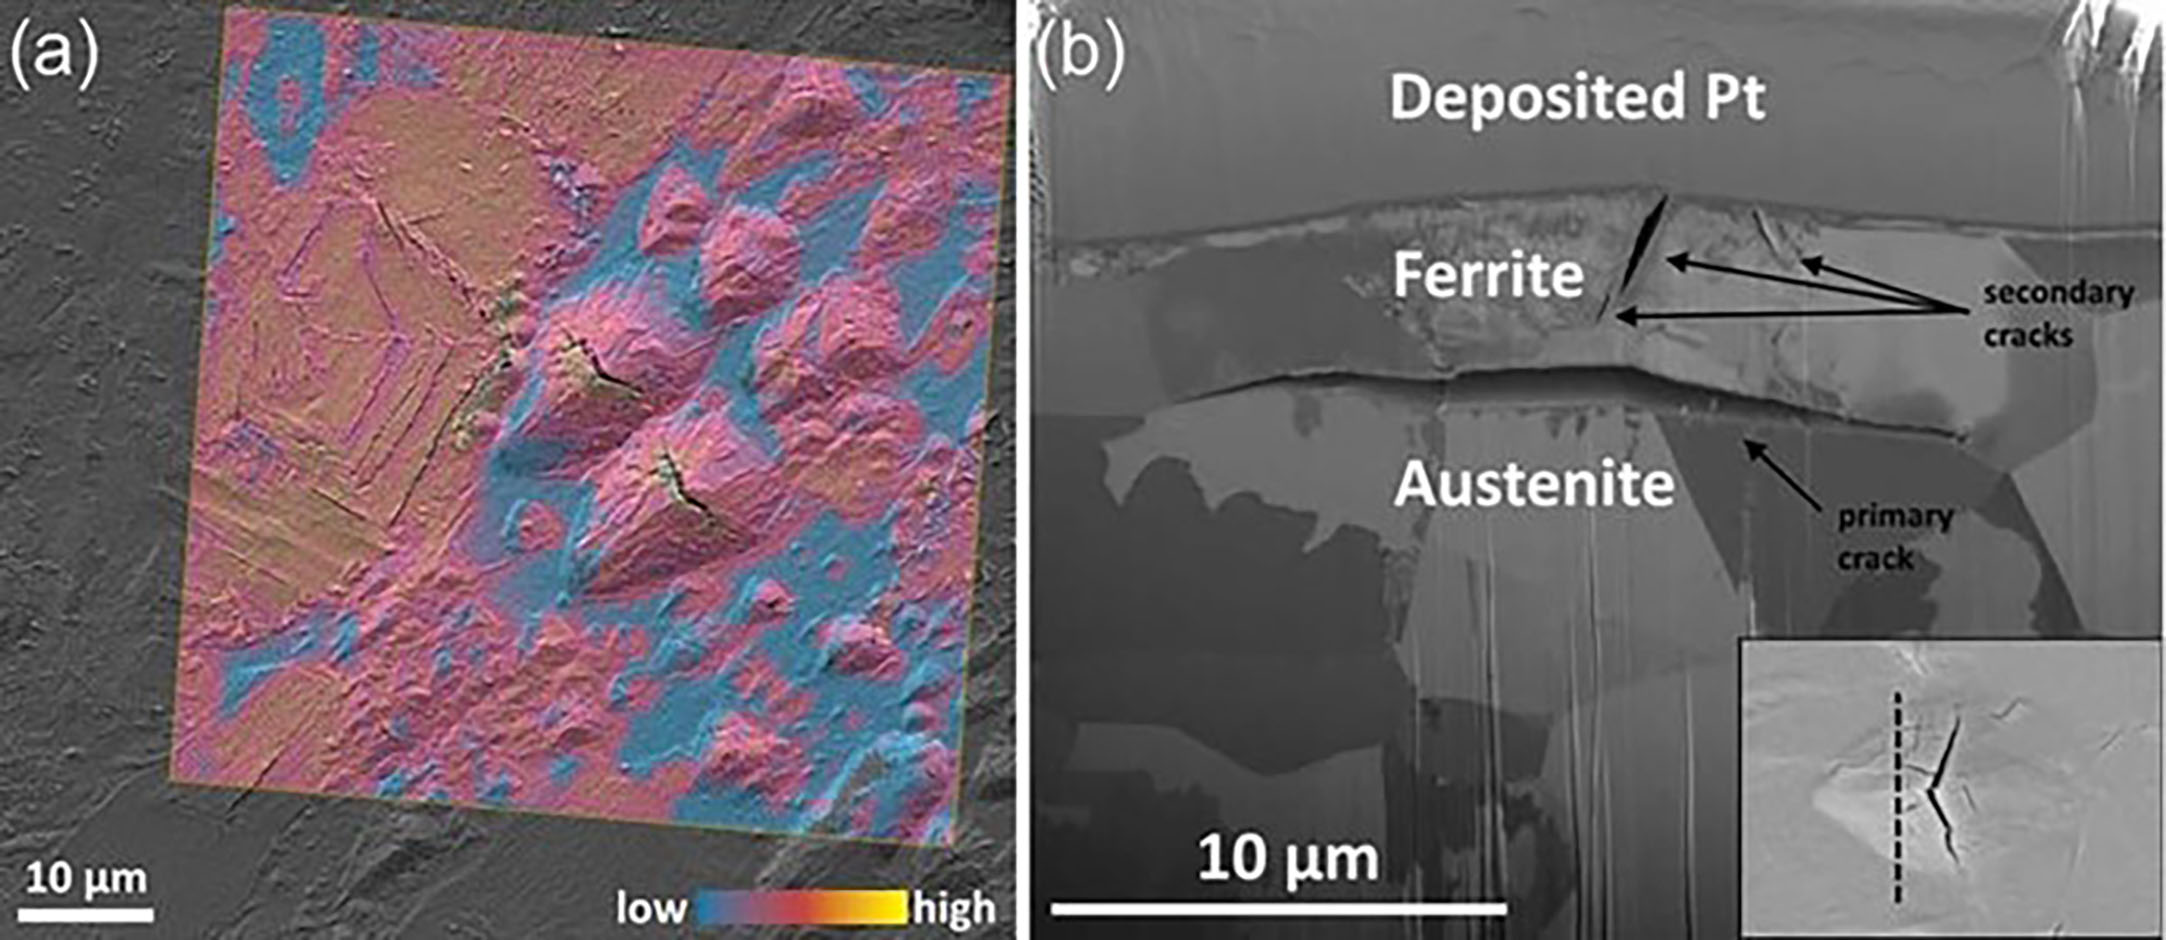 a) The arrowhead-shaped delaminations in stainless steel reveal cracks with significantly higher deuterium concentrations b) Secondary ion cross-sectional profile for one such delamination. CREDIT: O. Sobol, G. Holzlechner, G. Nolze, T. Wirth, D. Eliezer, T. Boellinghaus, and W.E.S. Unger